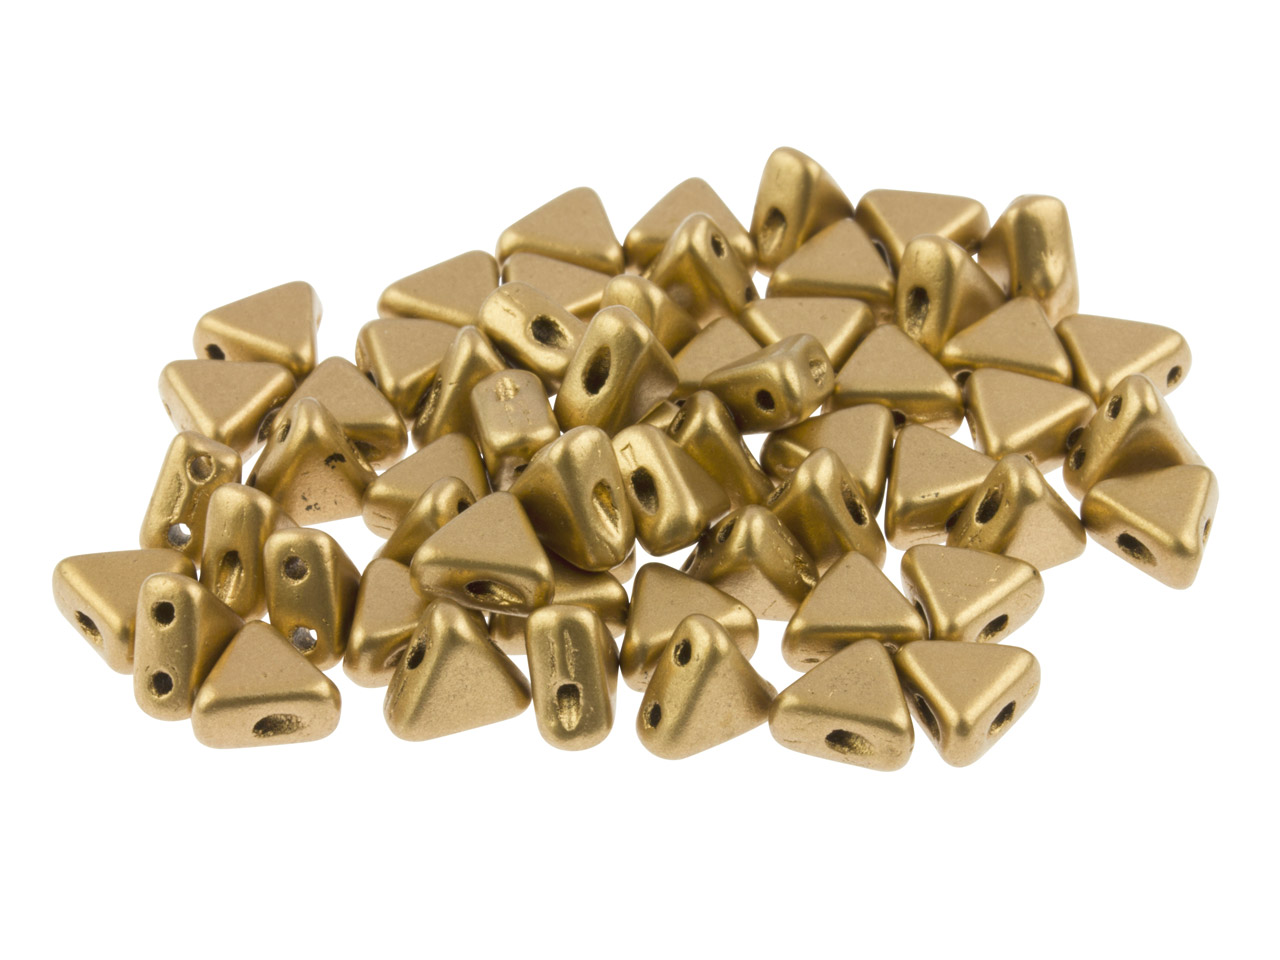 Kheops Puca 6mm Czech Beads, Light Gold Matte, 9g Tube, Two-holed     Beads